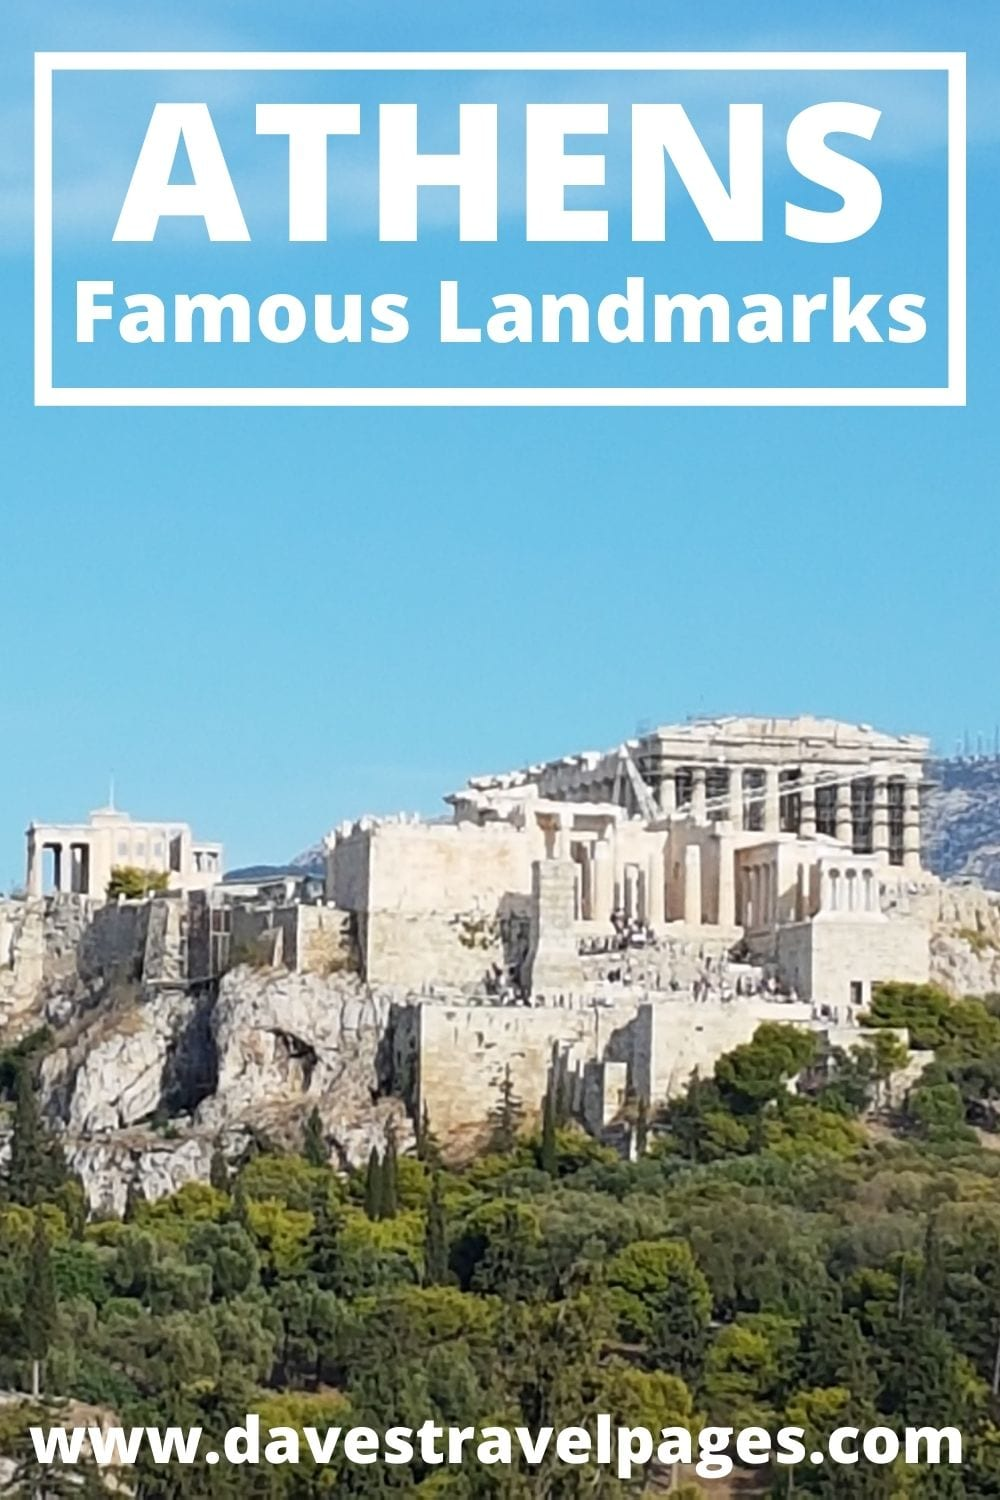 A guide to 10 of the most famous landmarks in Athens Greece